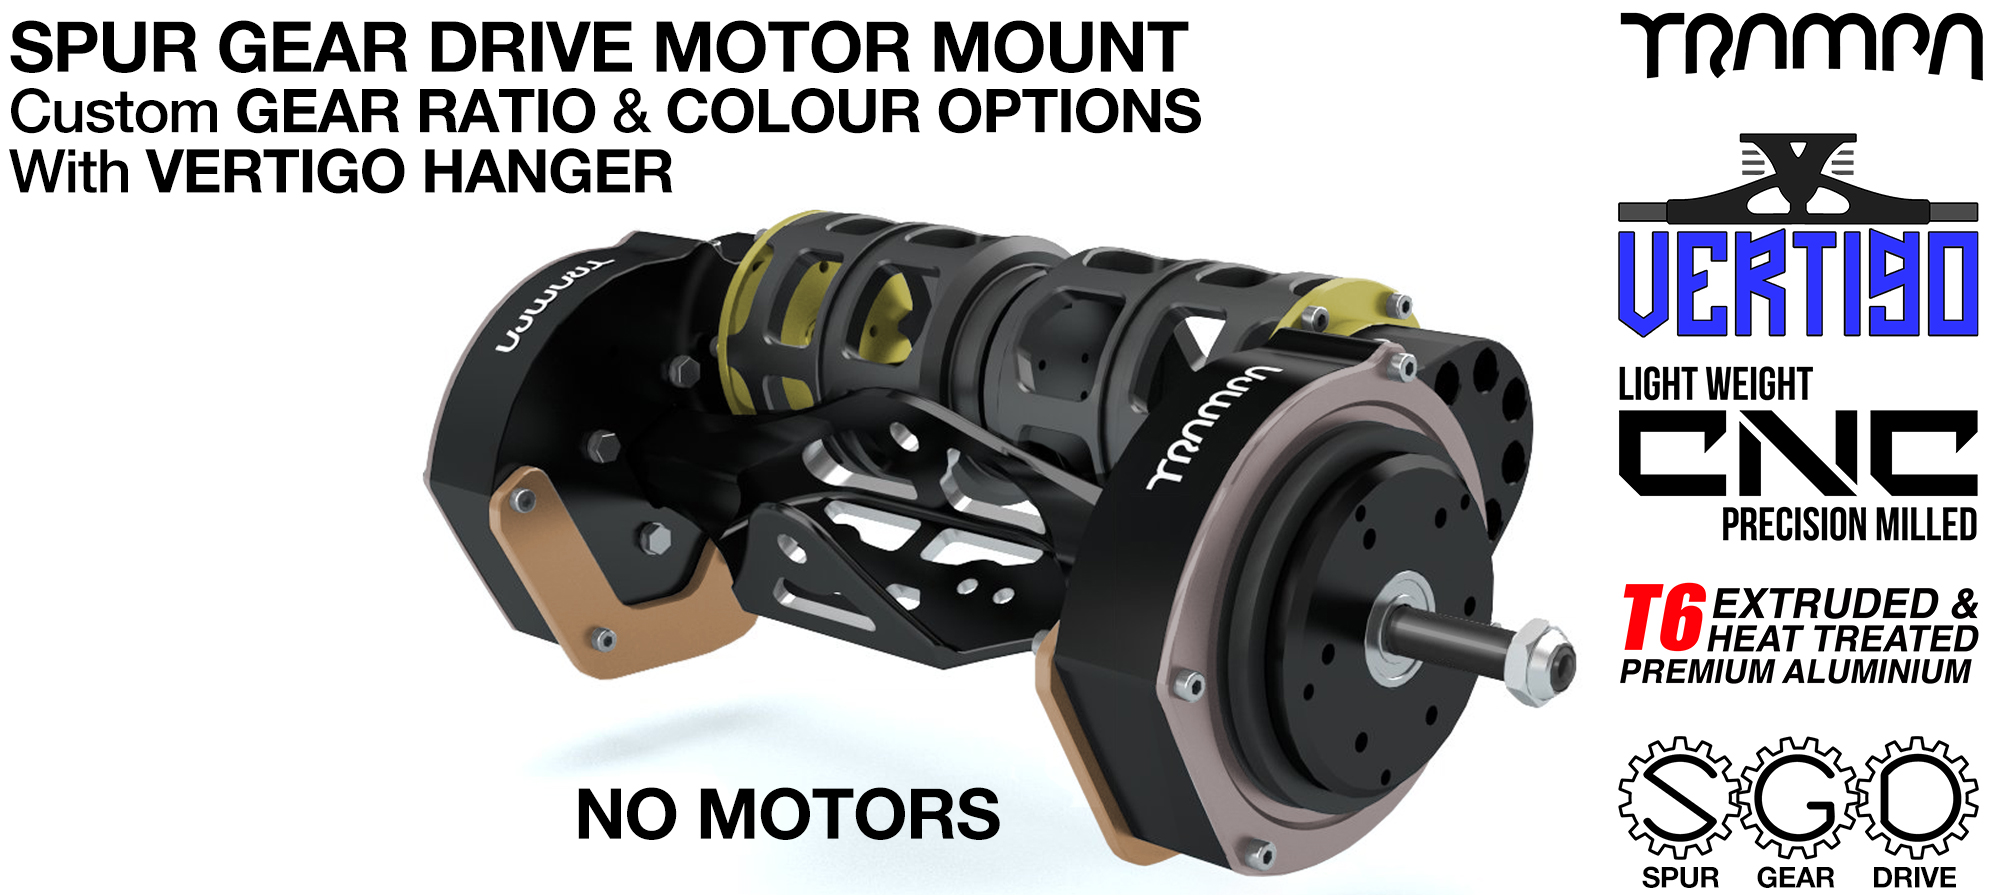 Mountainboard Spur Gear Drive TWIN Motor Mounts & VERTIGO Hanger